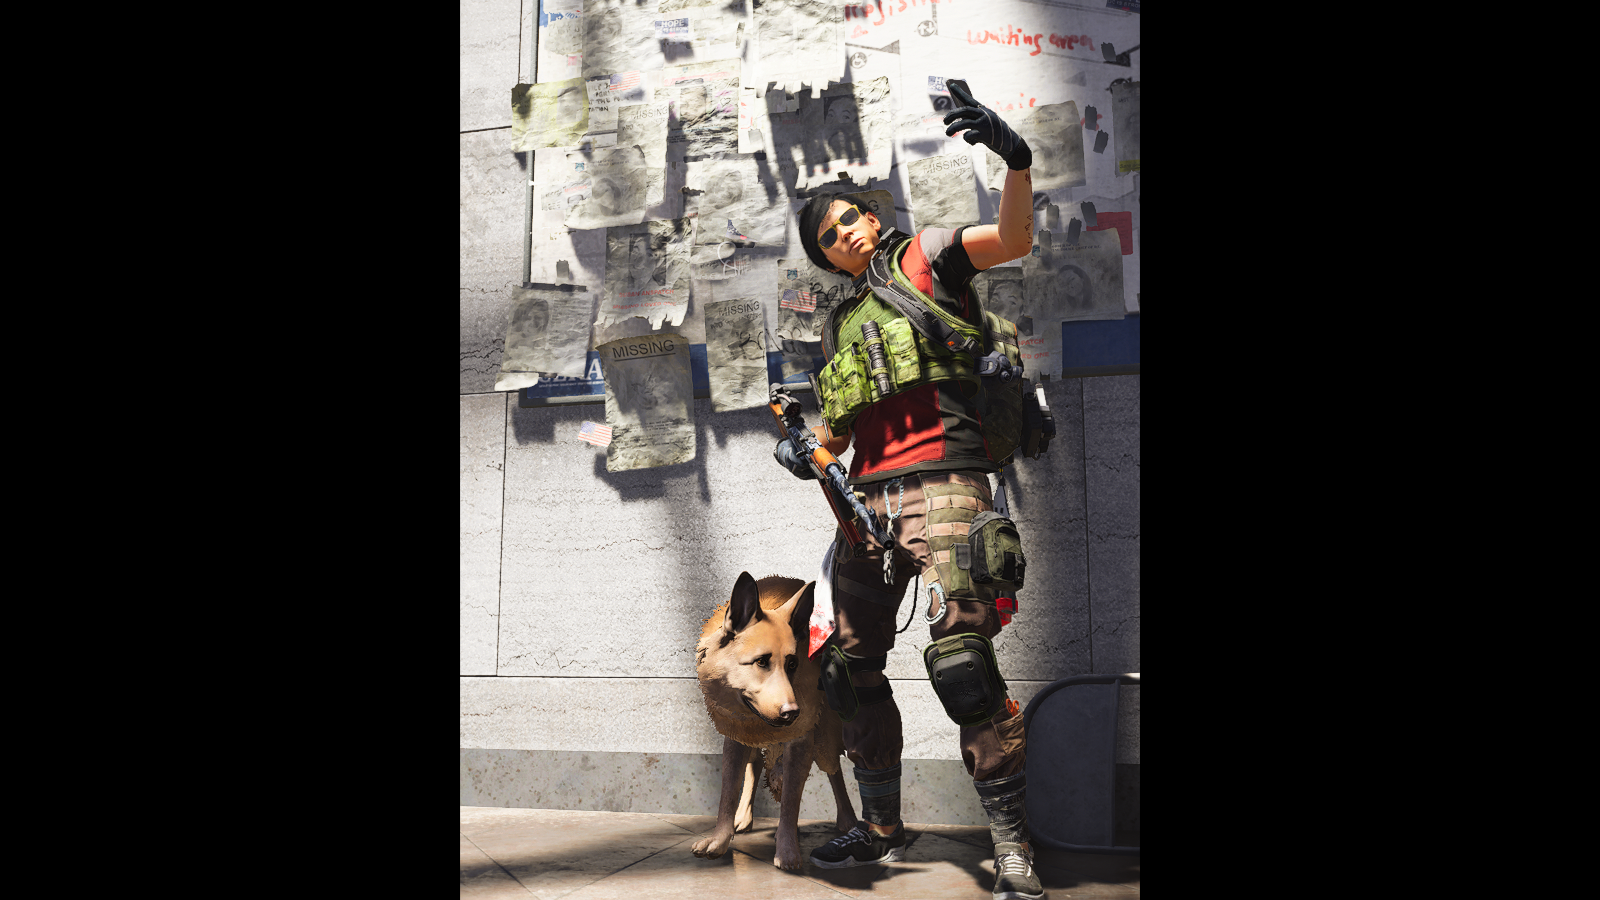 Tom Clancy's The Division 2_20190817_221958.png - Tom Clancy's The Division 2